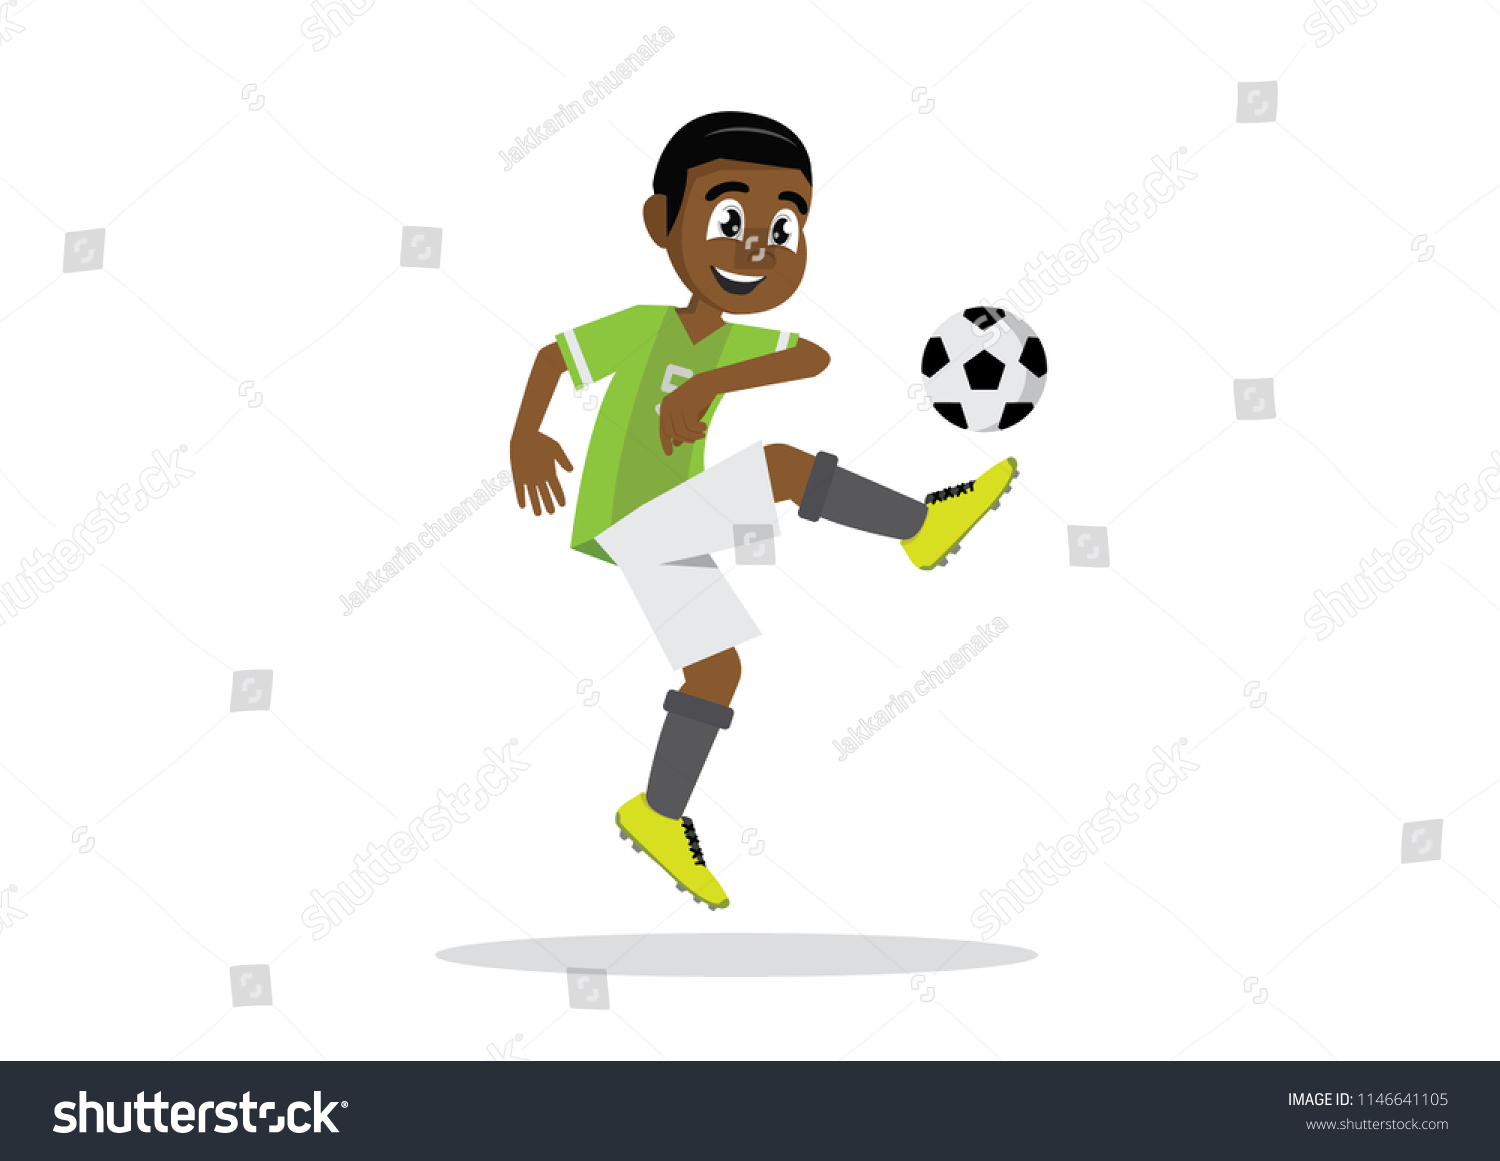 20+ Boy Soccer Player Cartoon Gif